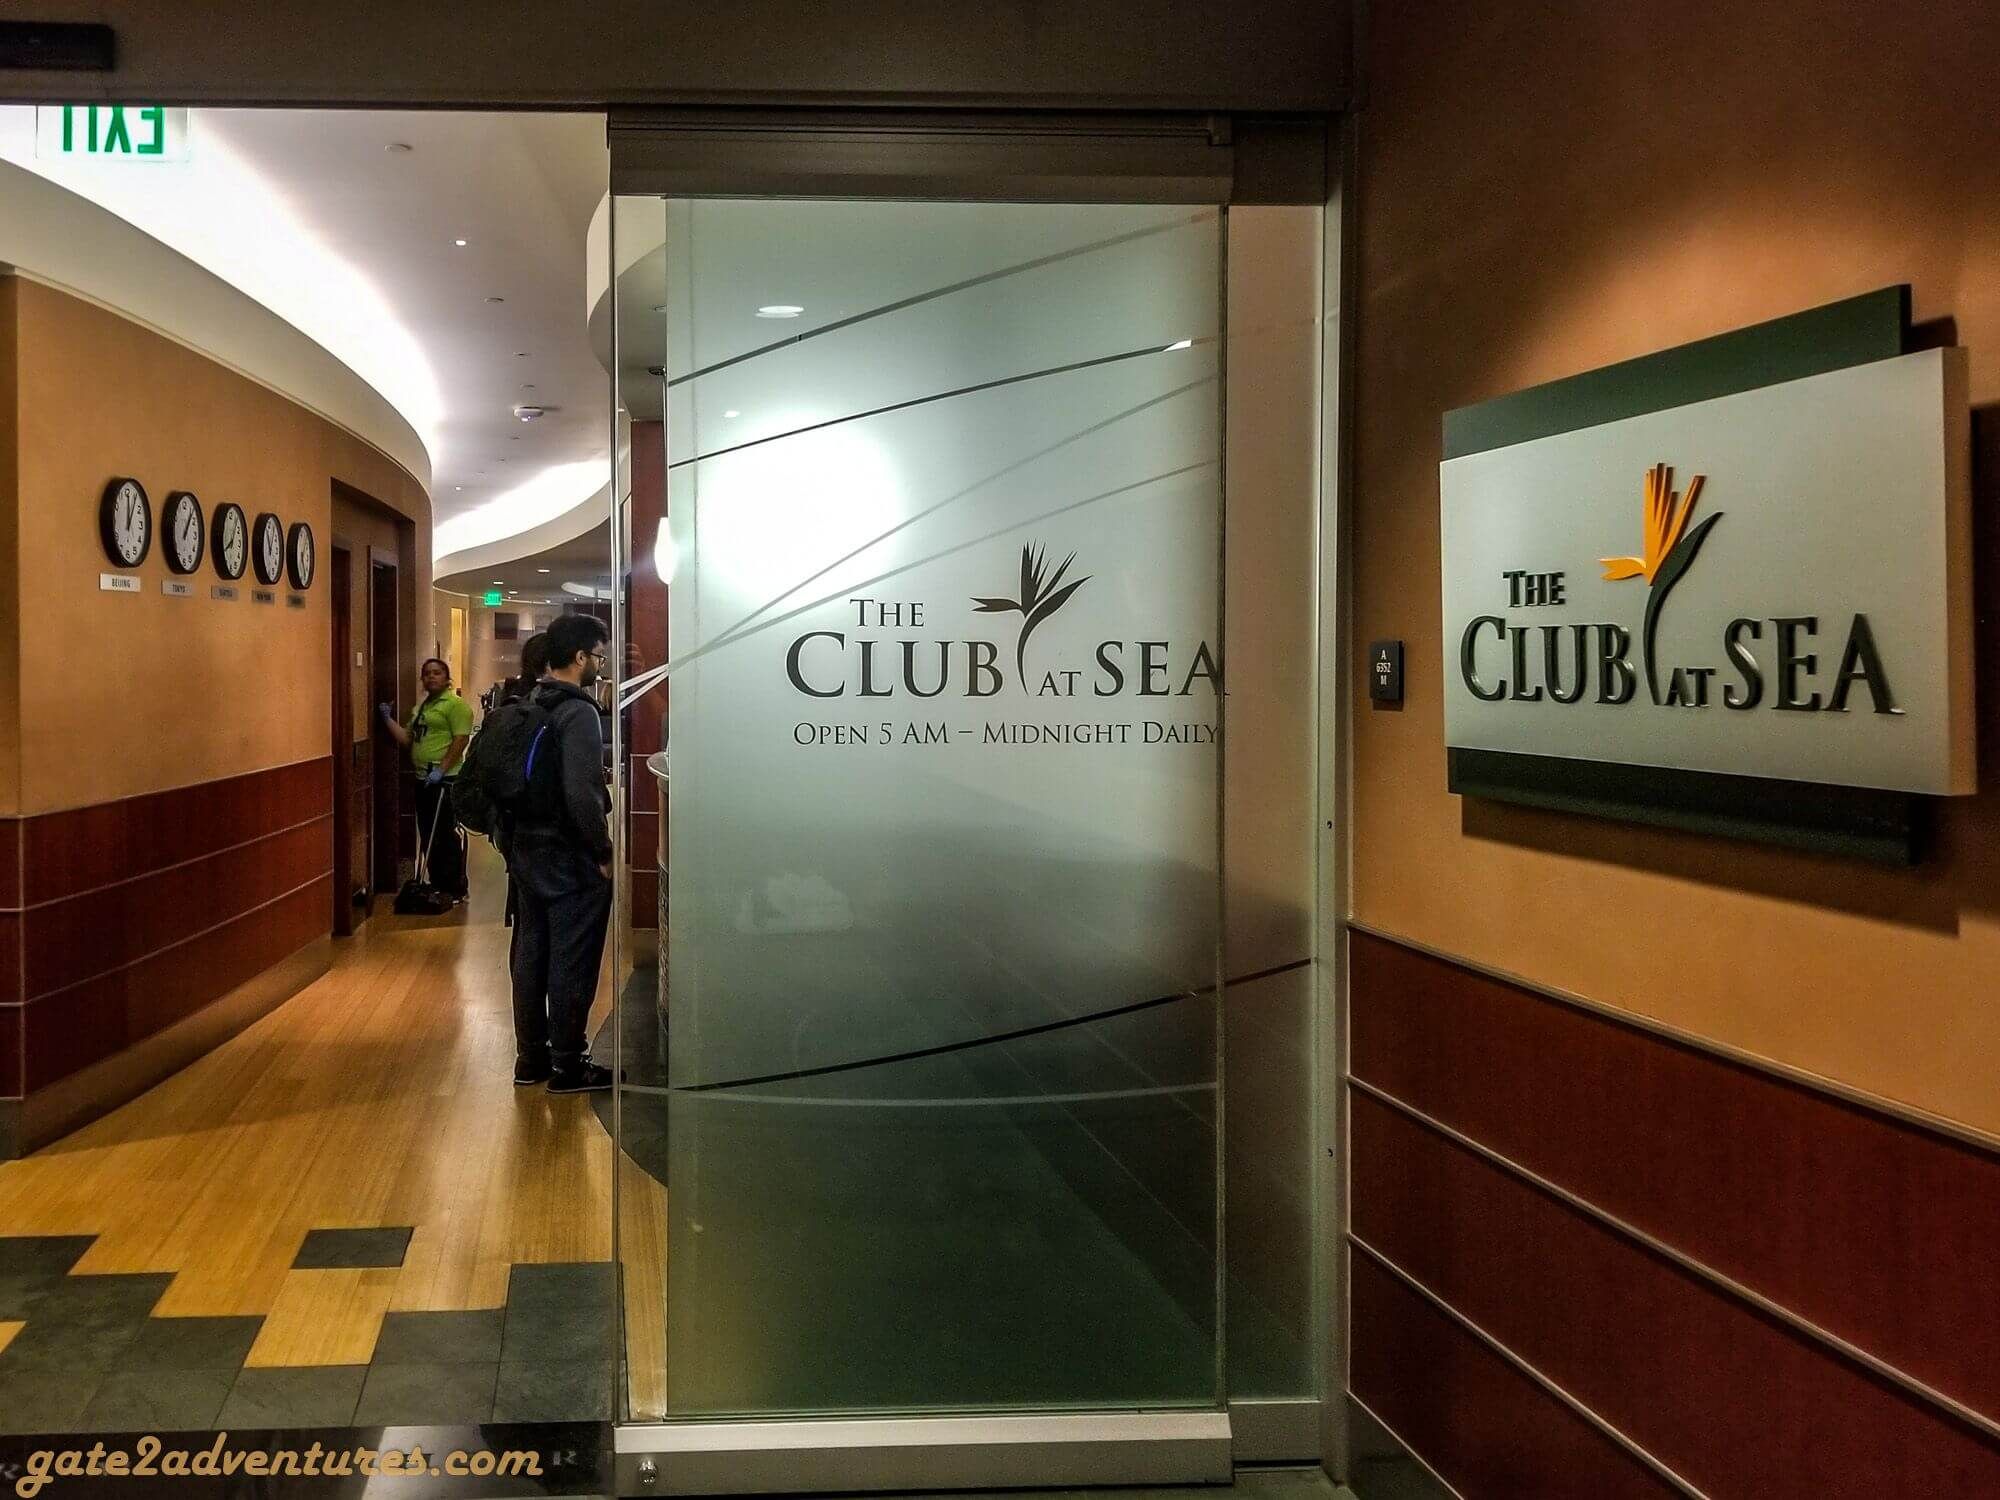 The Club at SEA (Concourse A)